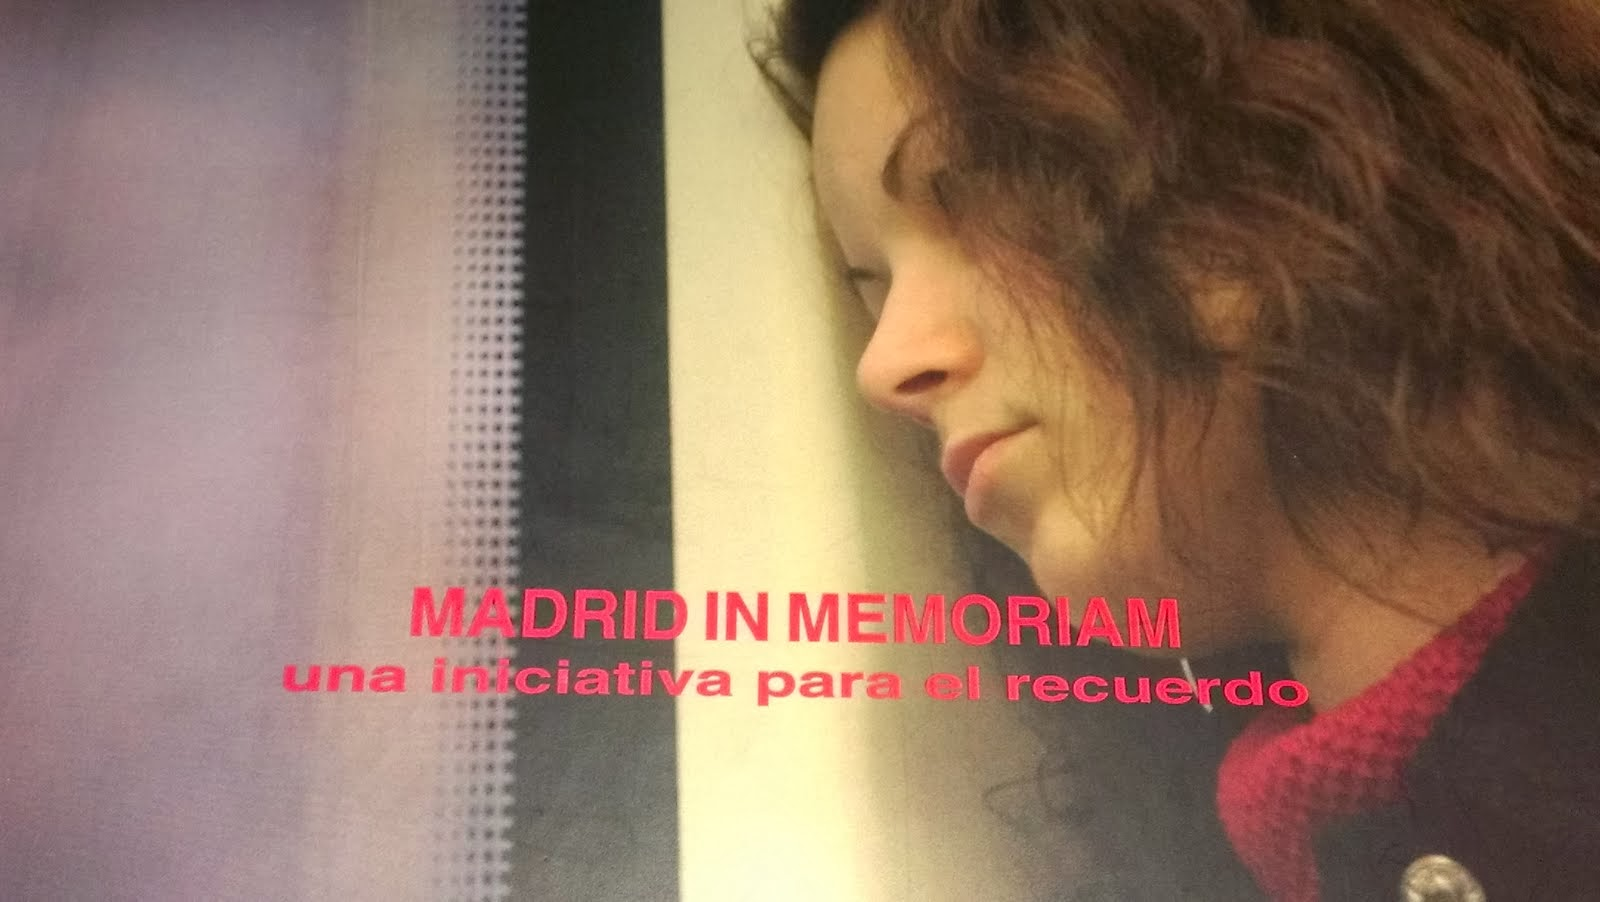 MADRID IN MEMORIAM